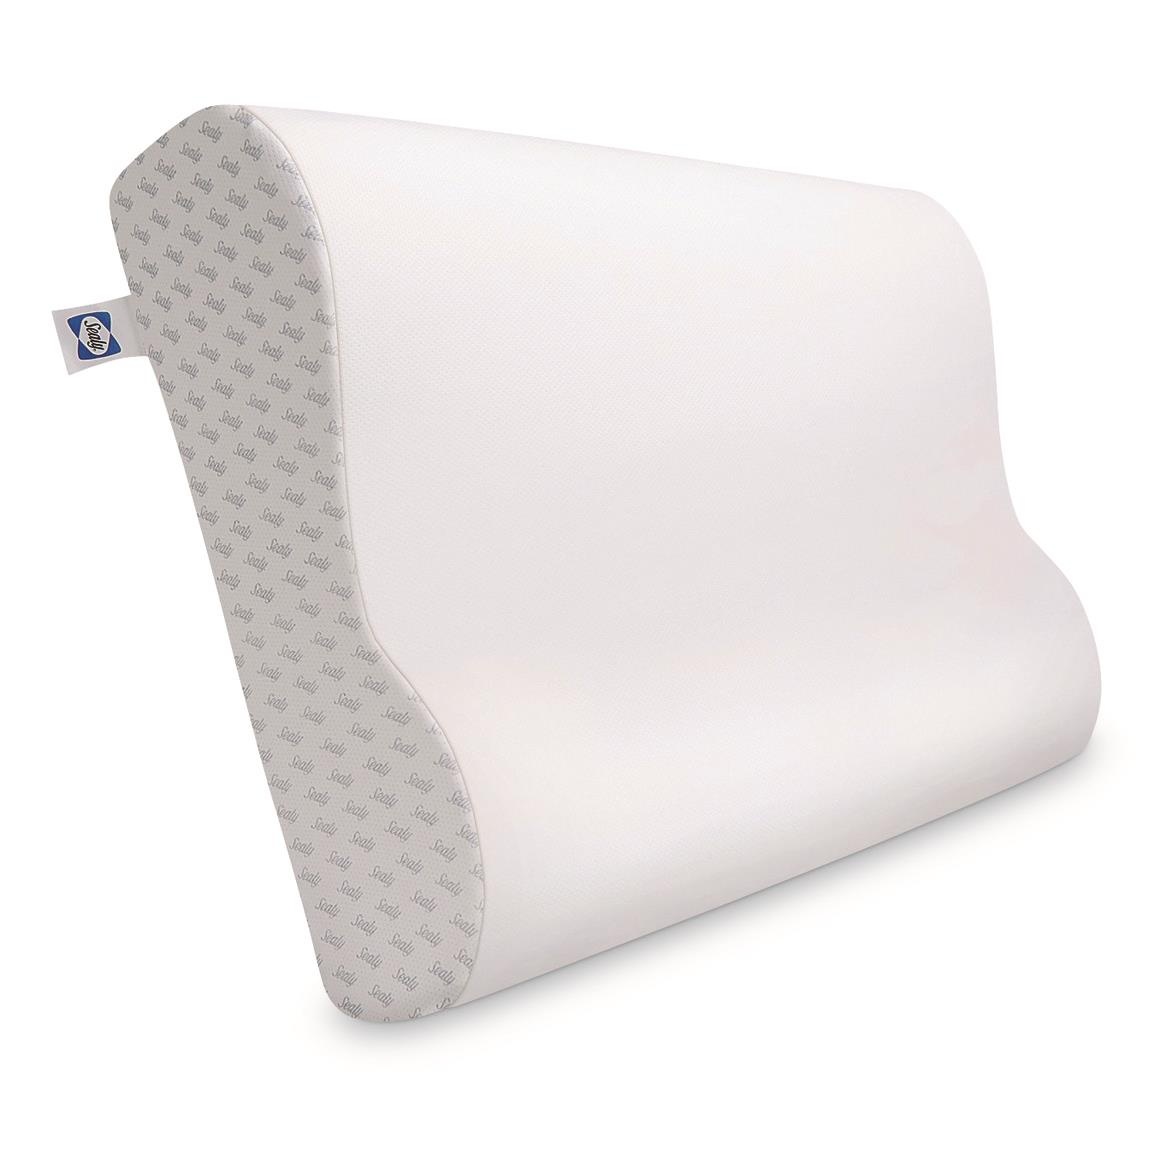 Sealy Essential Memory Foam Contour Pillow